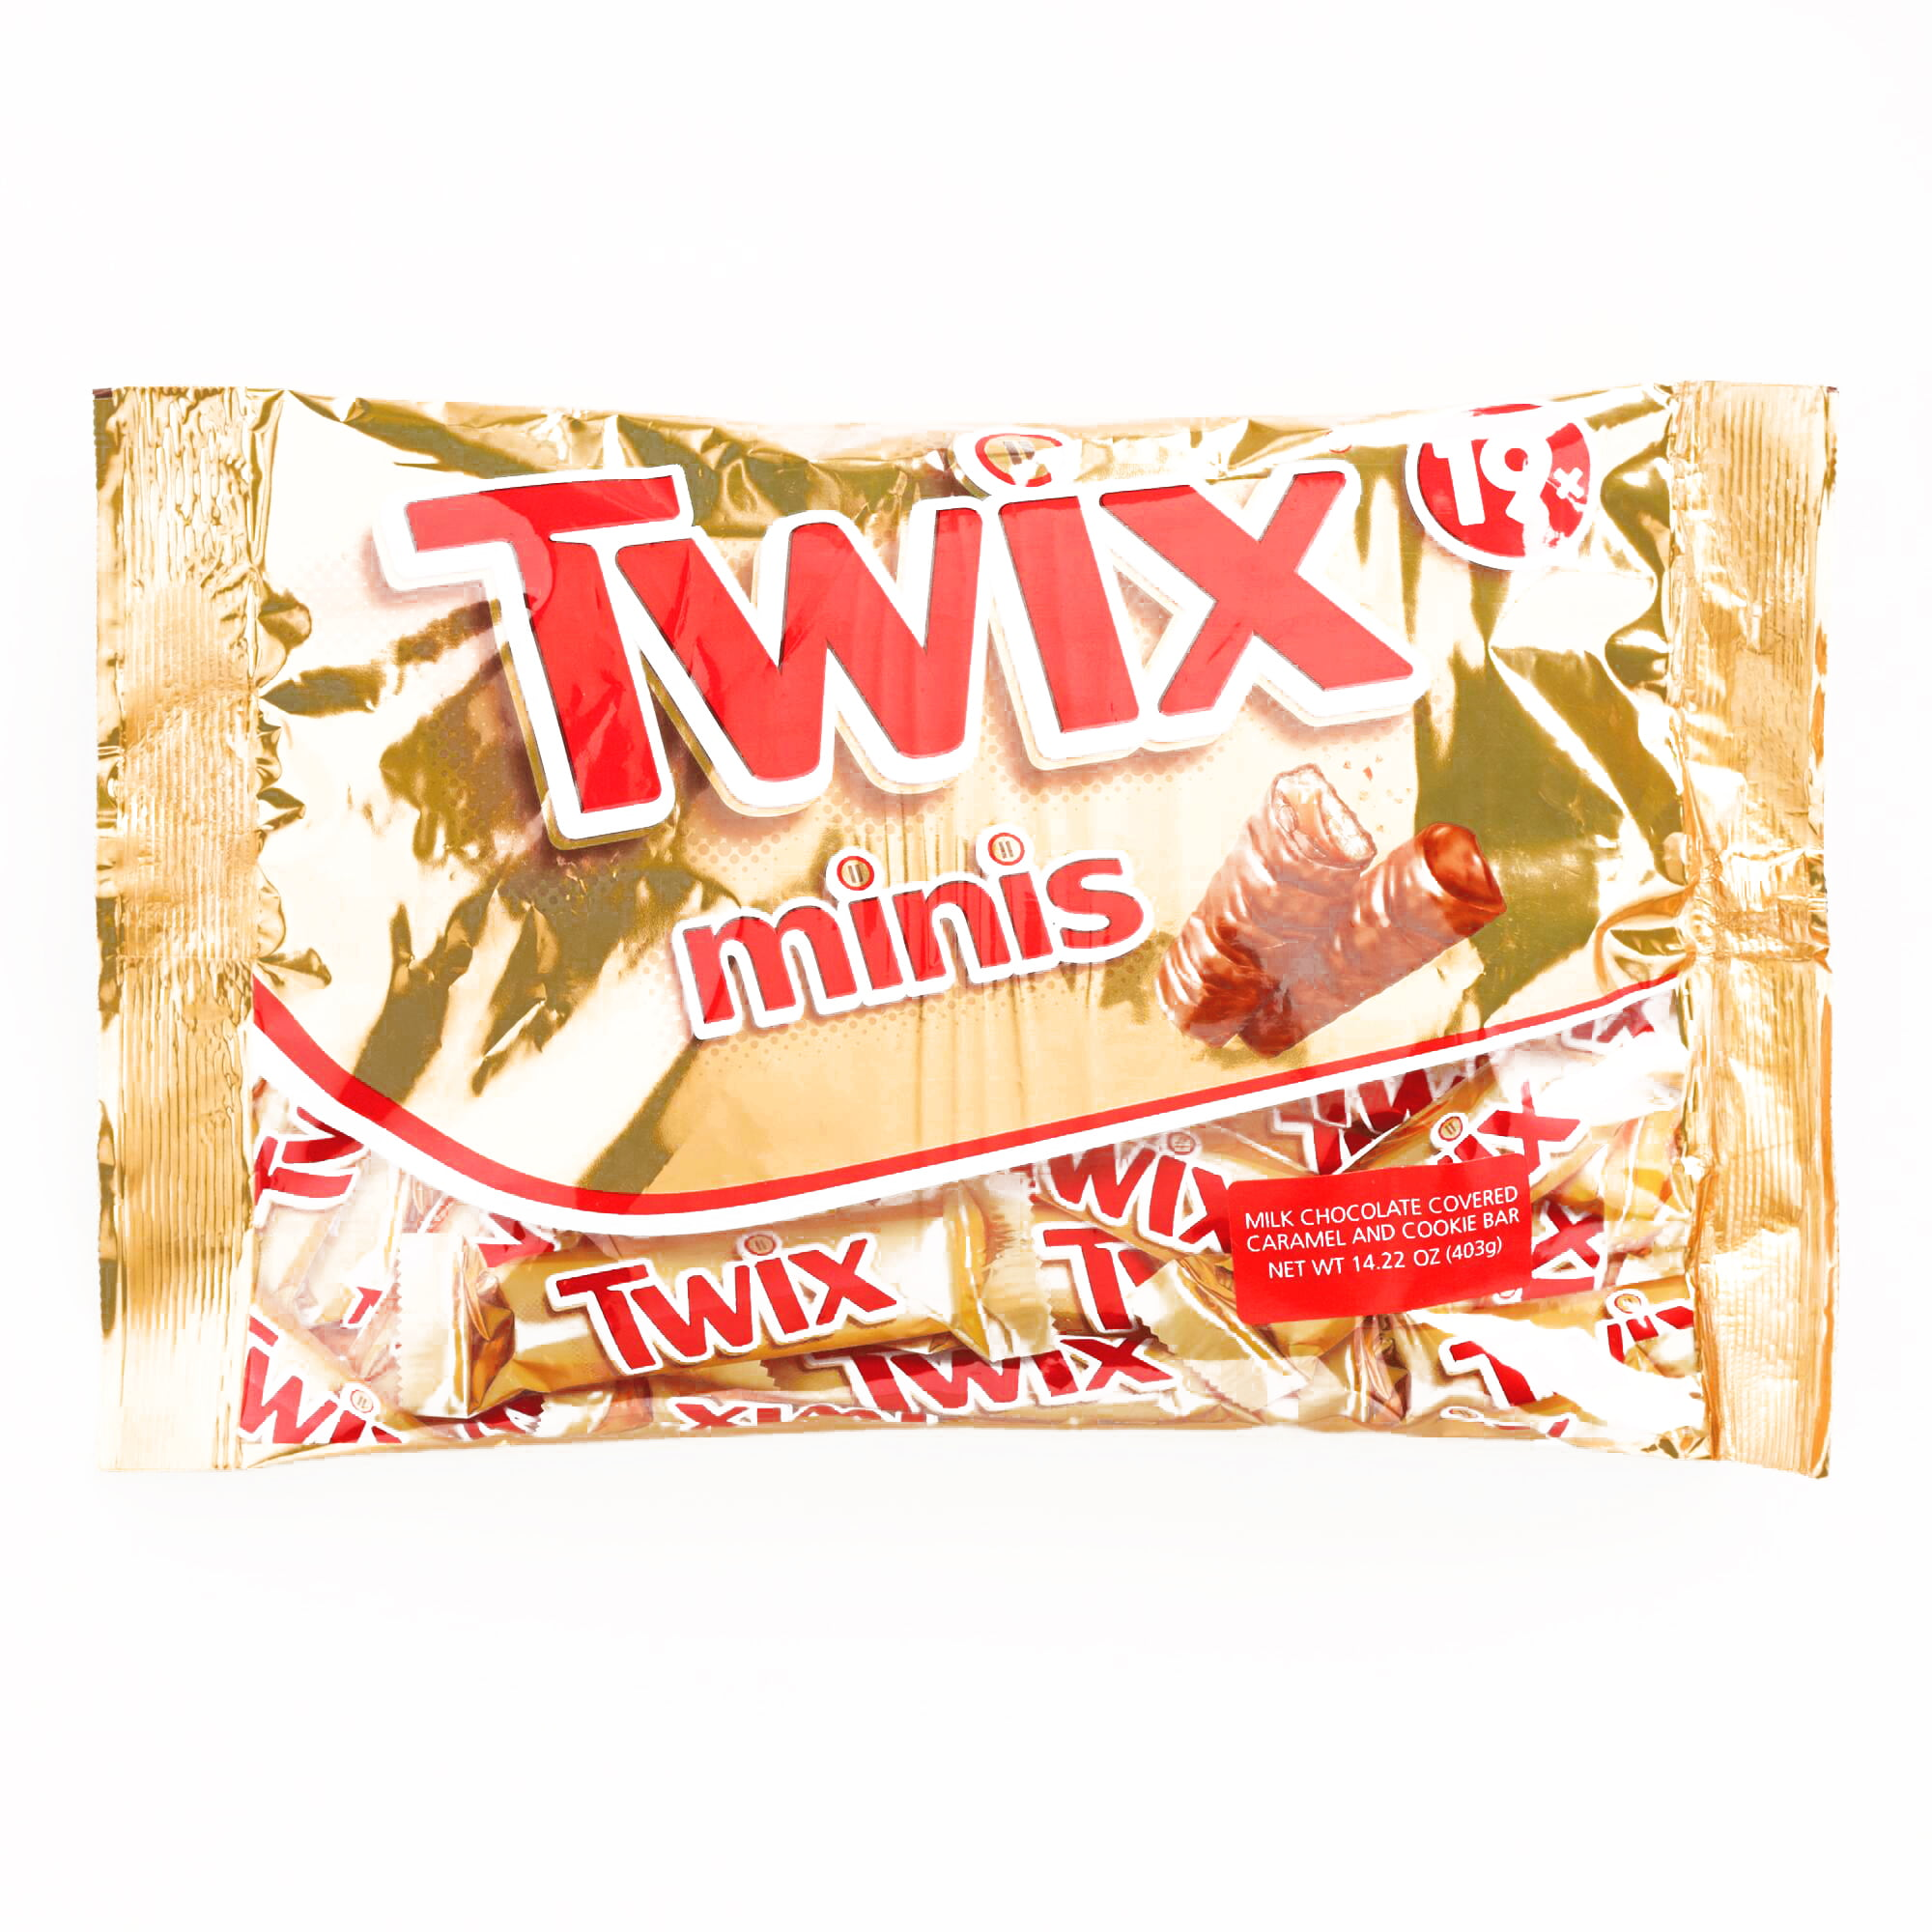 TWIX Caramel Chocolate Candy Bar Mini in a Plastic Jars with Lid 2-3 Pouds